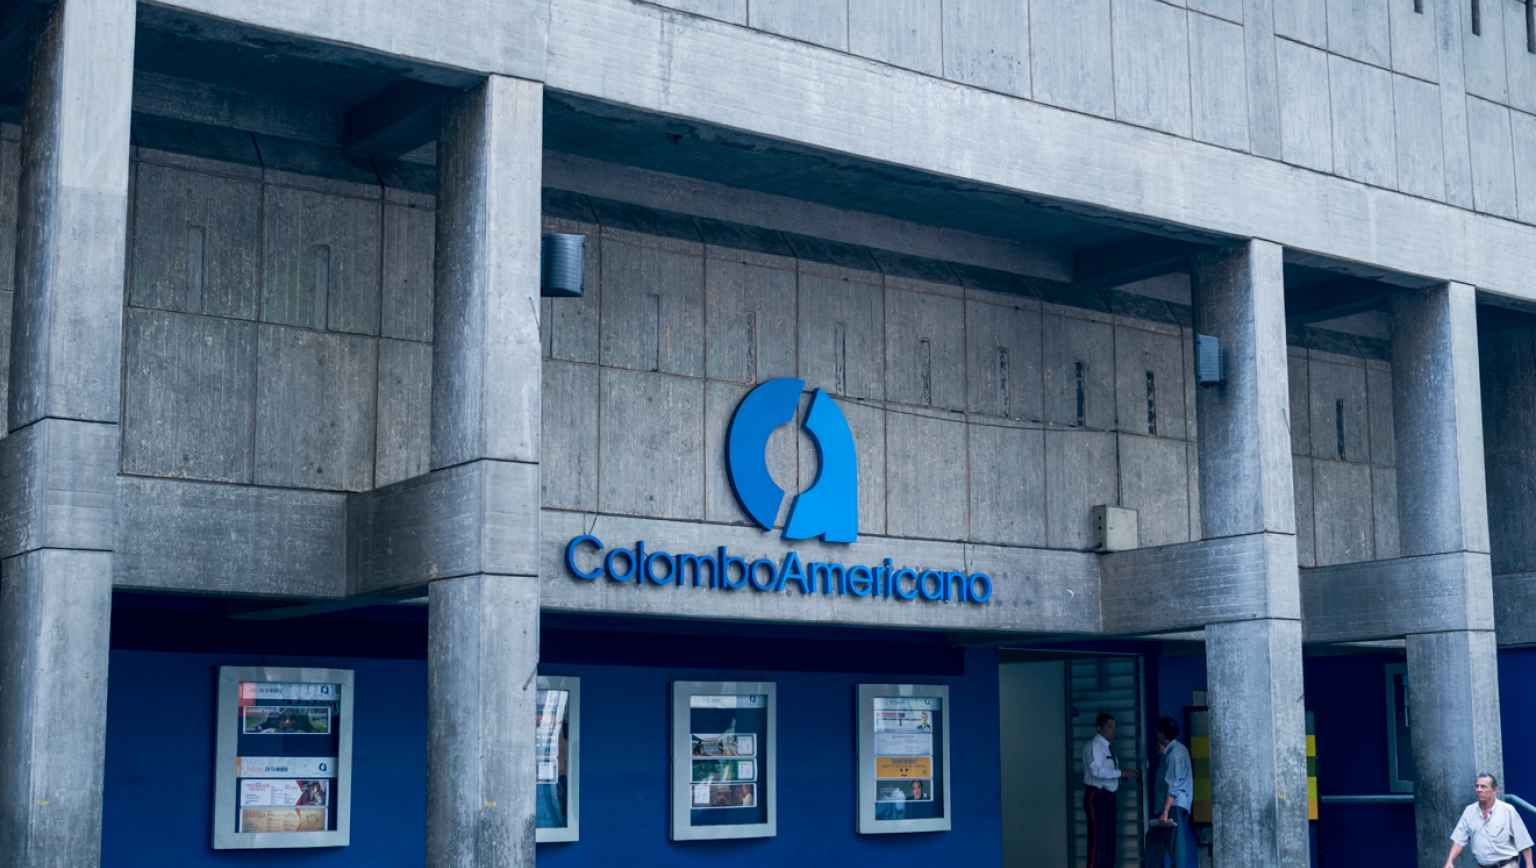 Centro Colombo Americano Medellin | EducationUSA